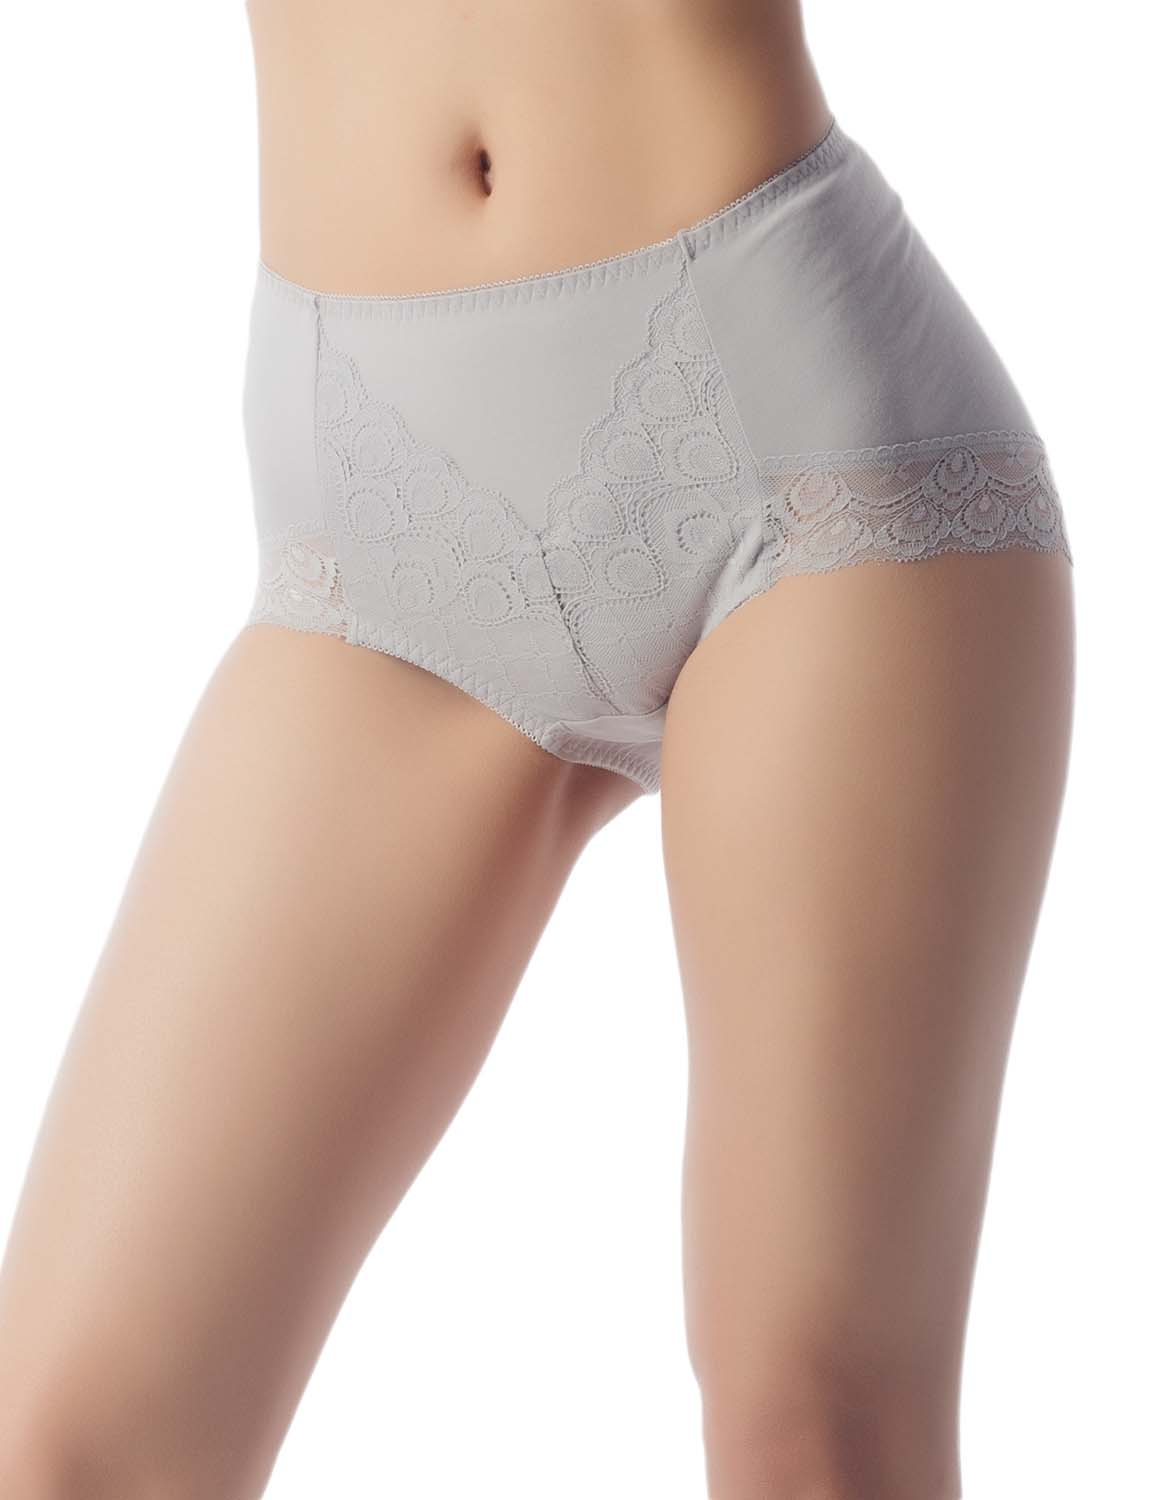 Women's Soft Modals Comfort Lace V Shape High-Cut High Waist Hipster Panty, Size: 2XL, Light Grey